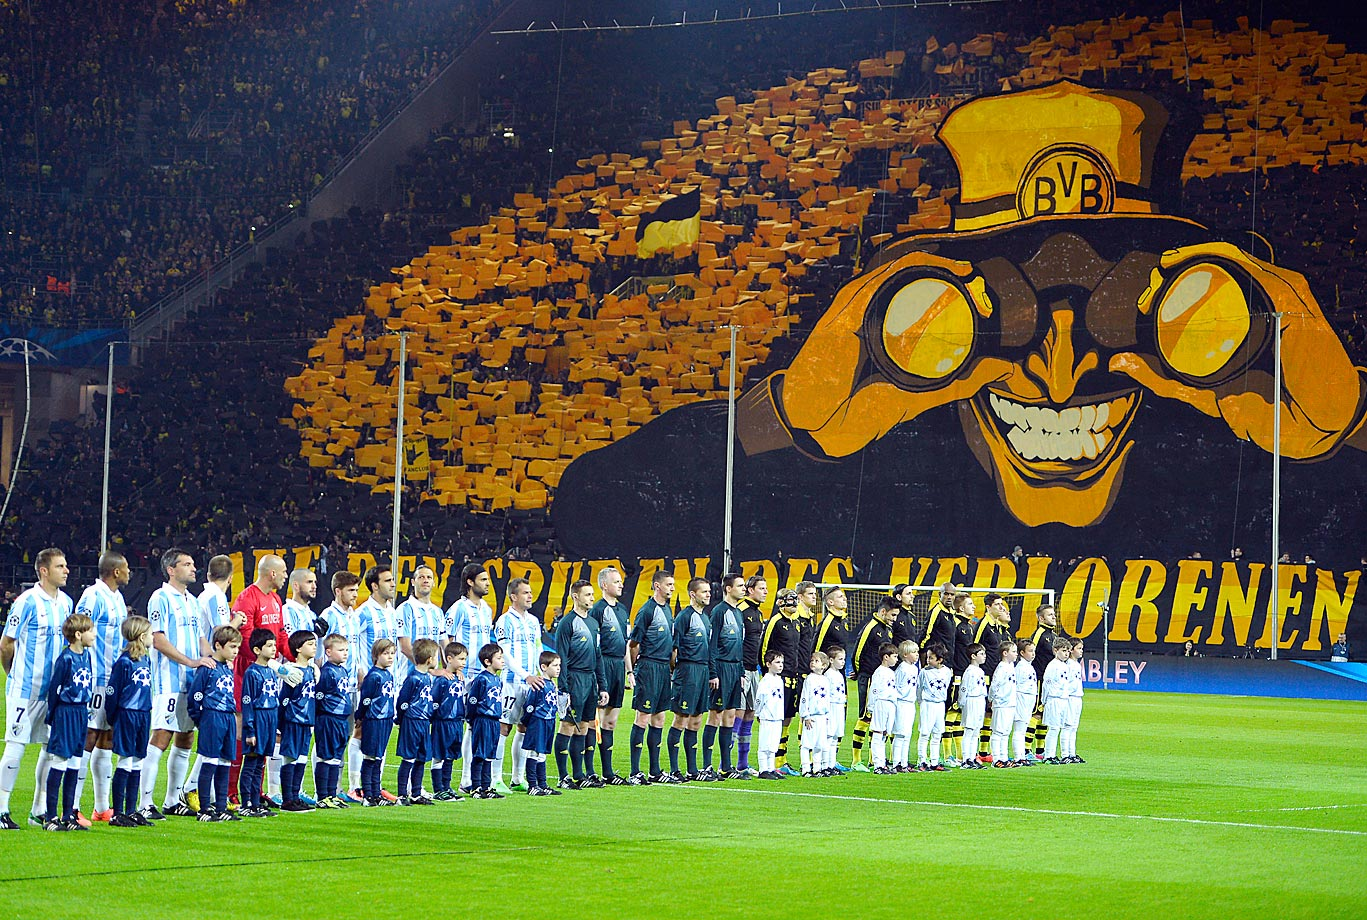 Borussia Dortmund fans put on a remarkable display ahead of a UEFA Champions League quarterfinal second leg match.